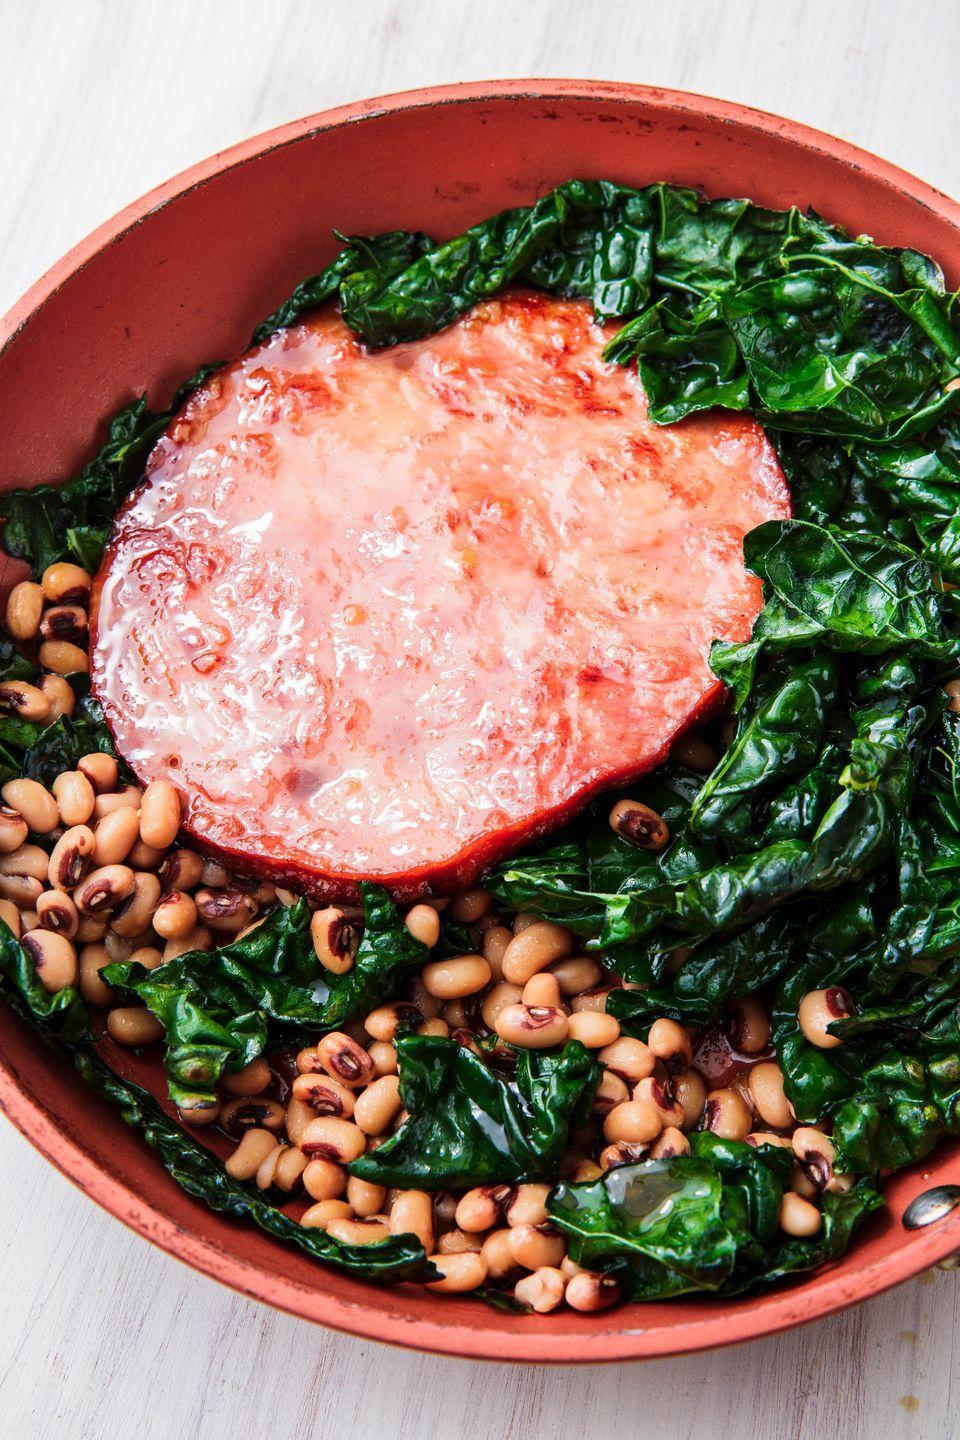 """<p>You don't need to make a whole ham to enjoy this Christmas classic.</p><p>Get the recipe from <a href=""""https://www.delish.com/cooking/recipe-ideas/a25361409/easy-ham-steak-recipe/"""" rel=""""nofollow noopener"""" target=""""_blank"""" data-ylk=""""slk:Delish"""" class=""""link rapid-noclick-resp"""">Delish</a>.</p>"""